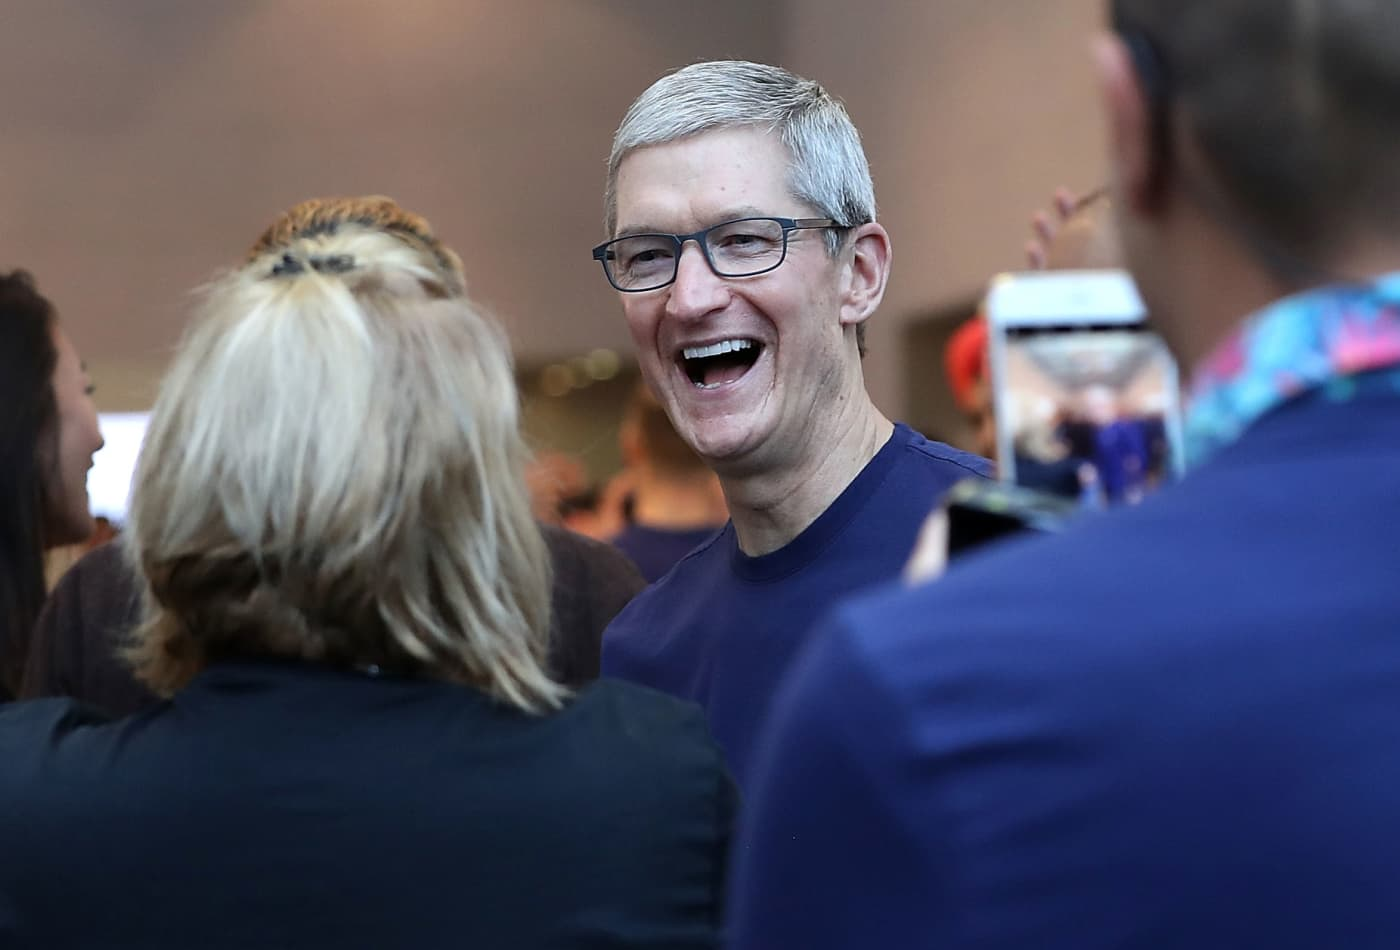 Tim Cook has had a stellar run at Apple — even without another mega-smash like the iPhone